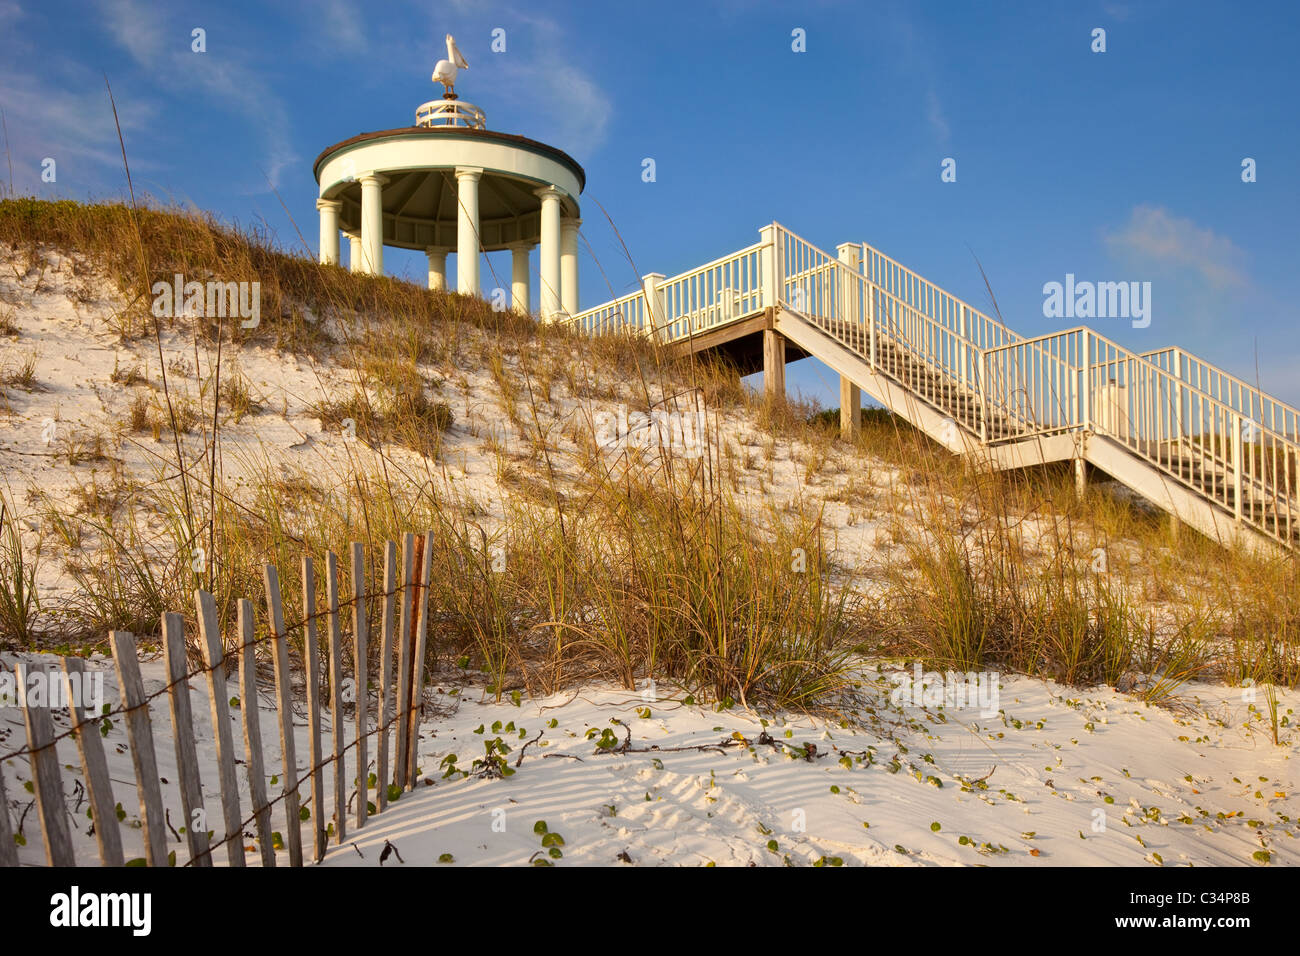 Stairs and walkway over dune leading to beach in Seaside Florida USA - Stock Image